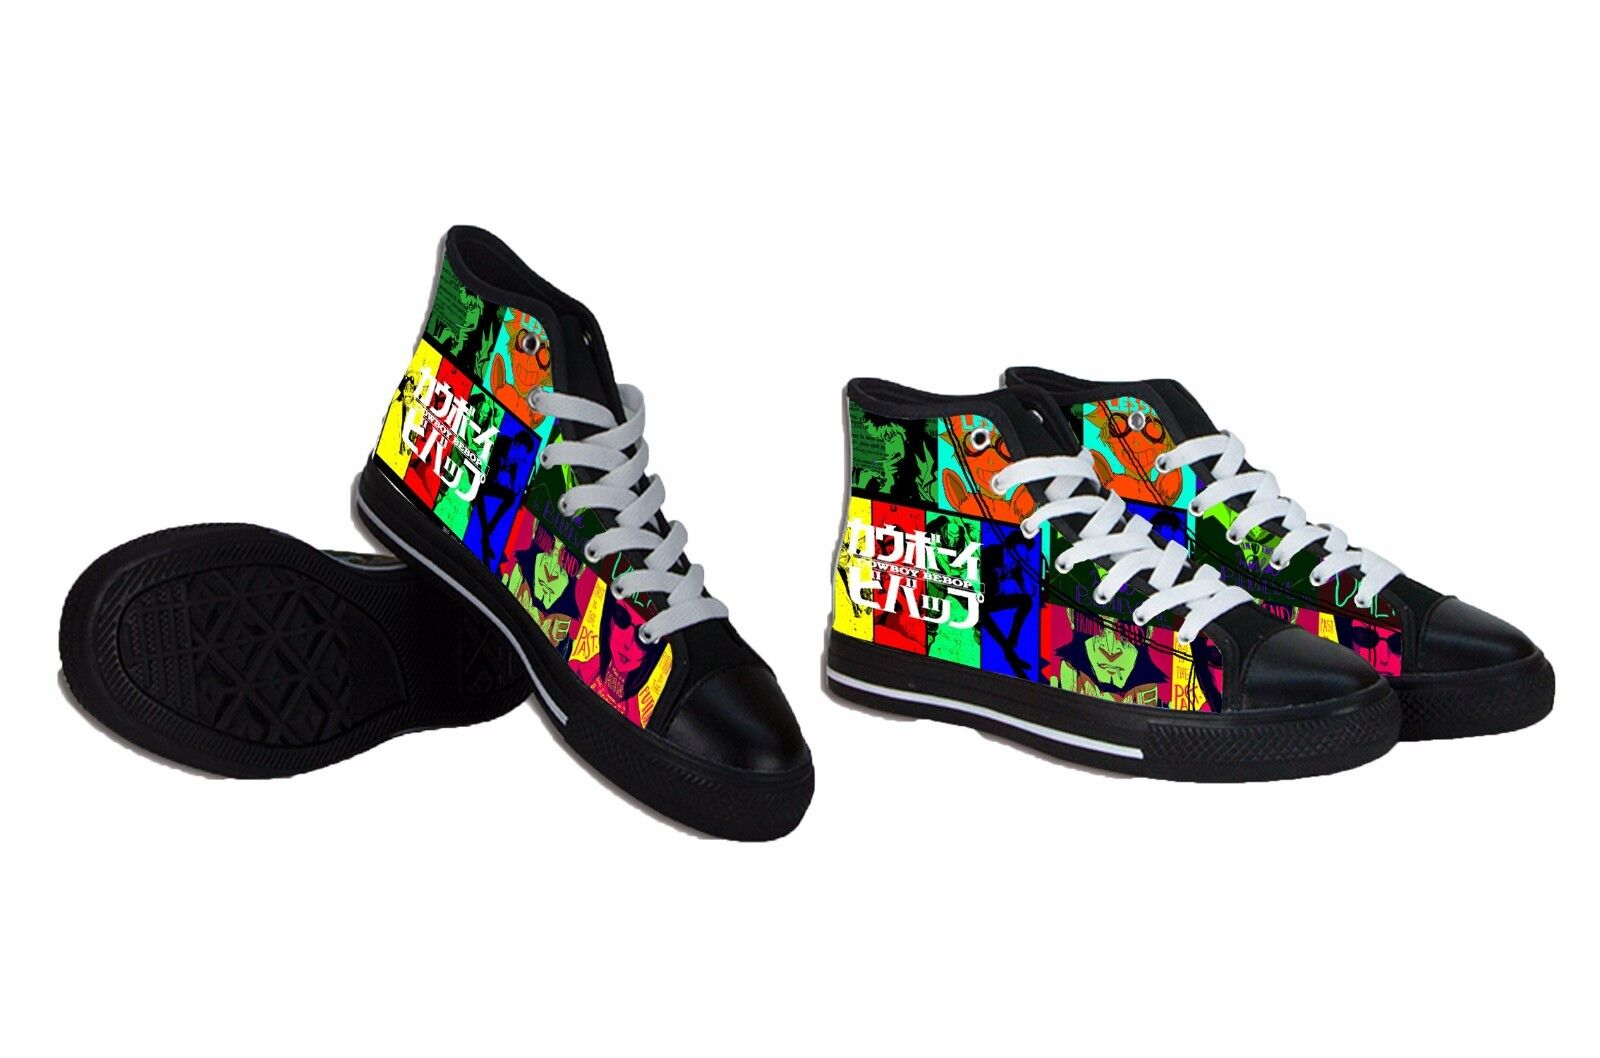 NEW The Cowboy Bebop Anime Canvas Mens Shoes RARE ITEMS